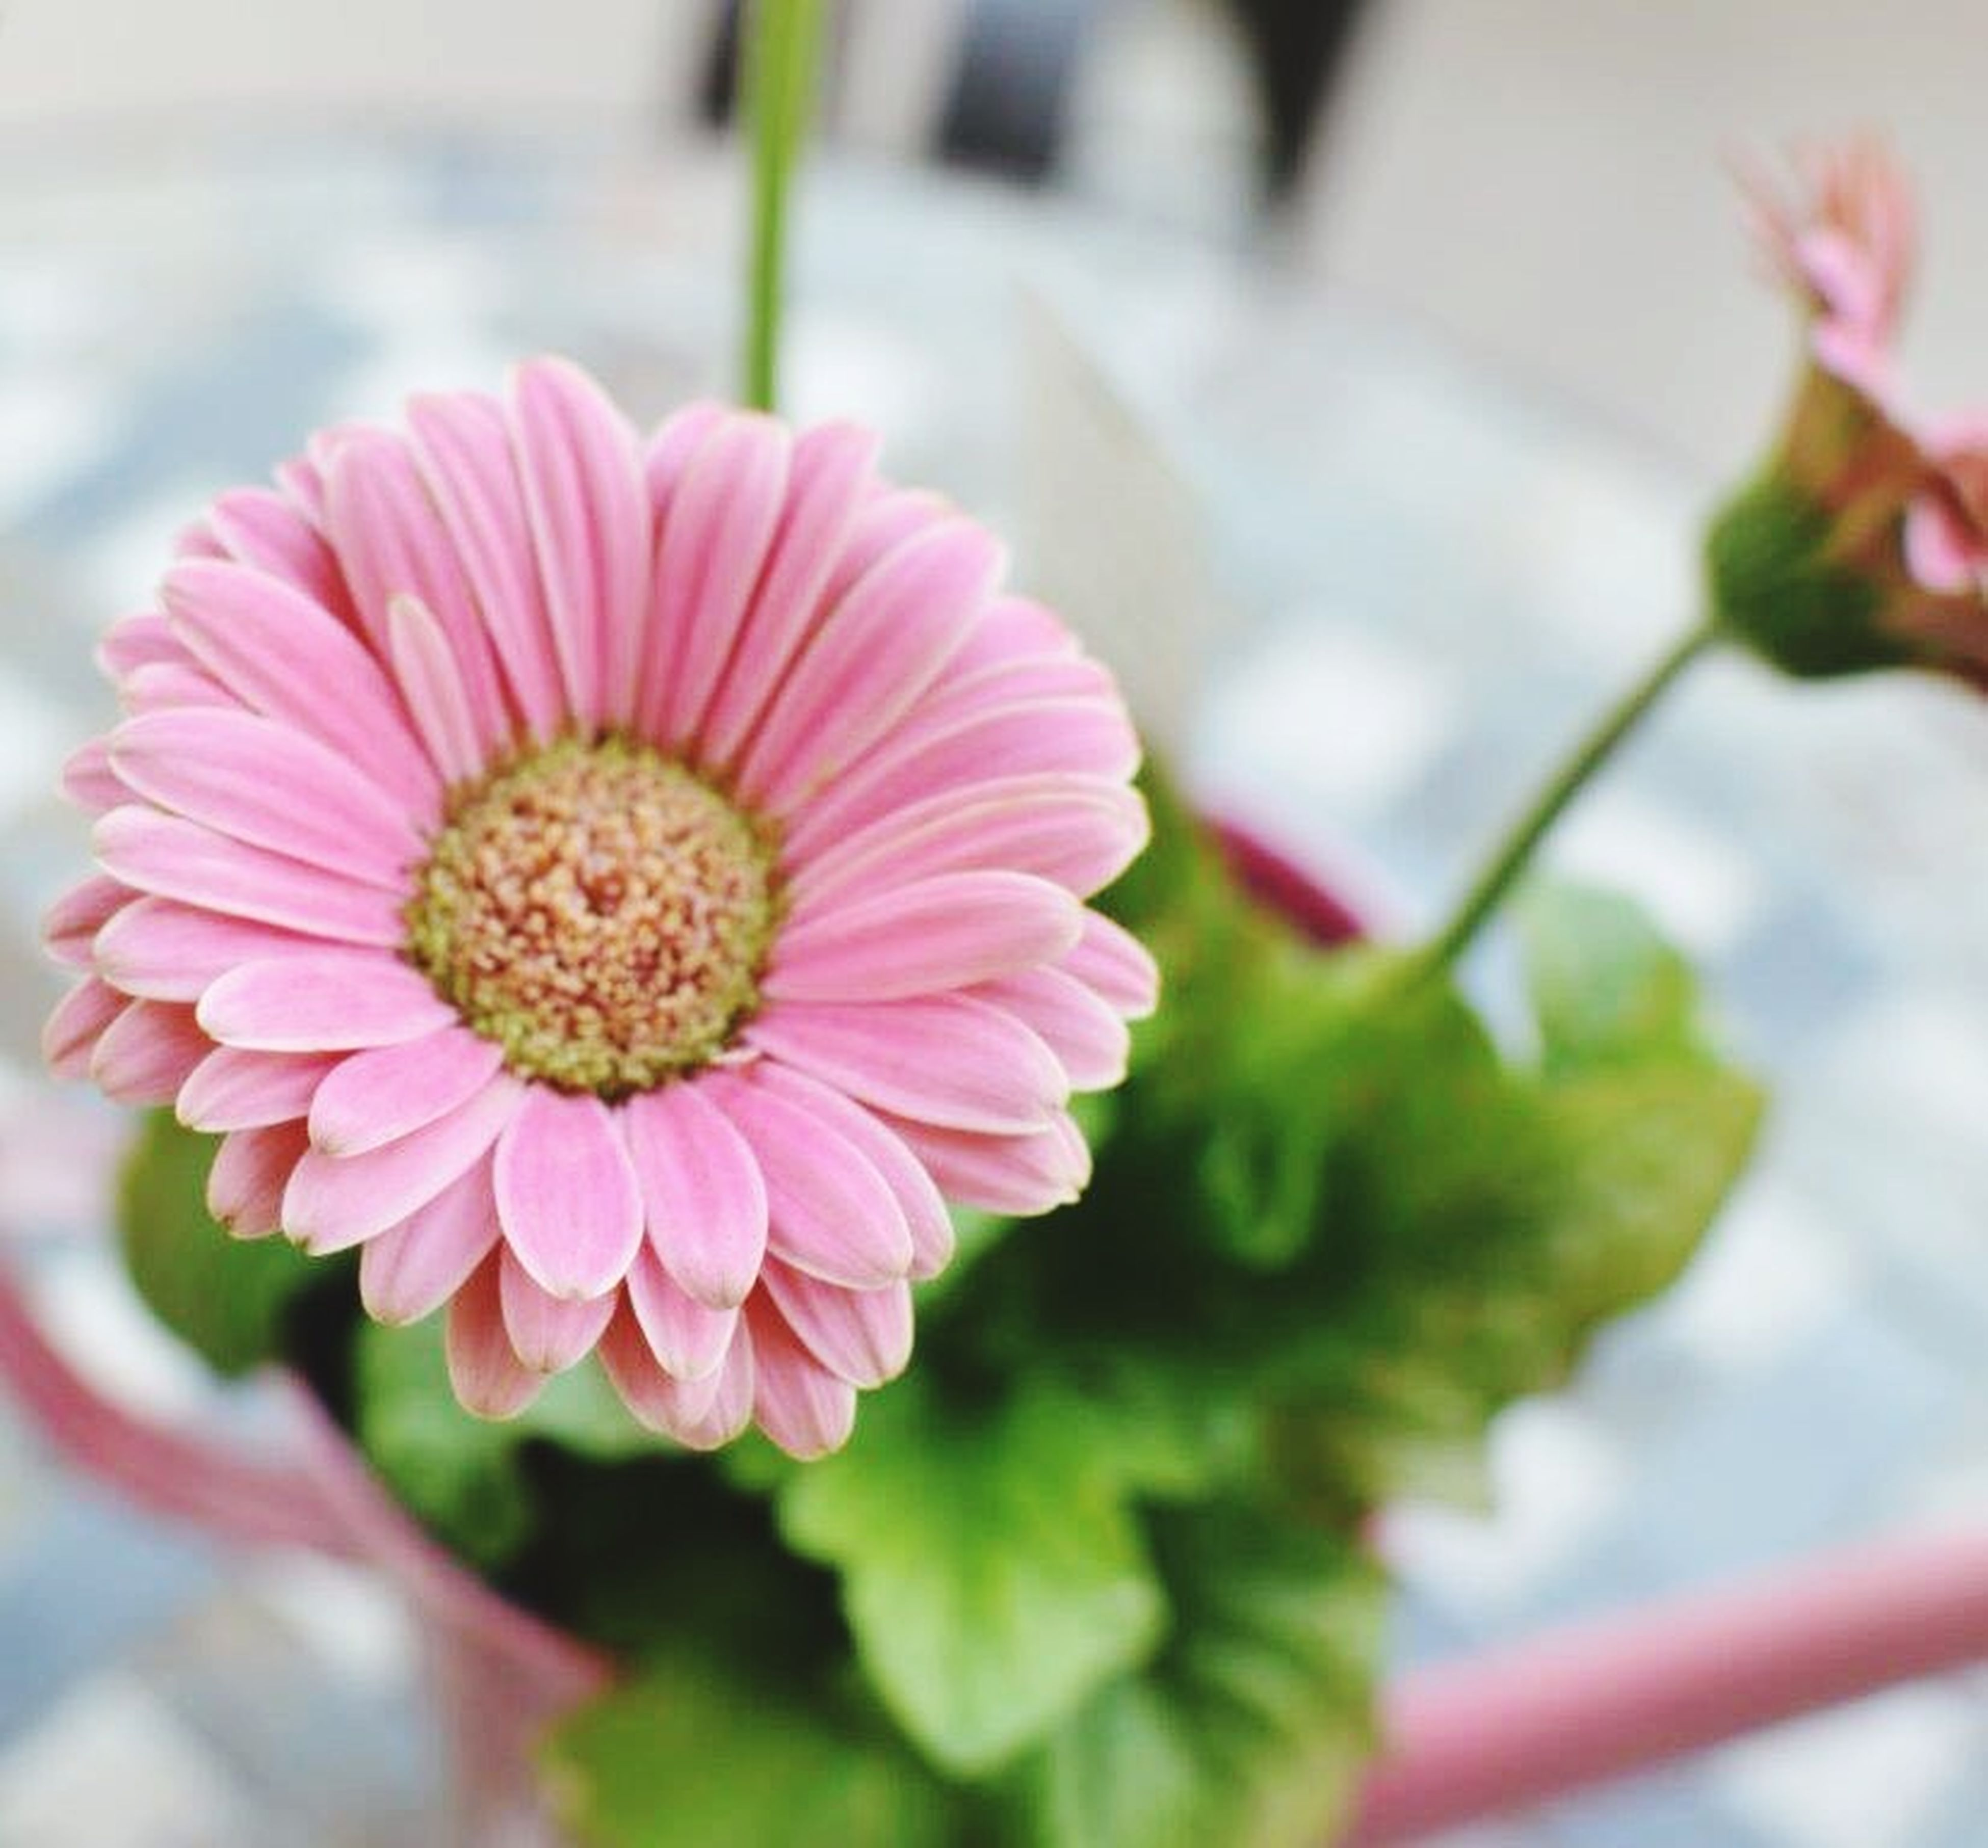 flower, petal, freshness, fragility, flower head, close-up, focus on foreground, beauty in nature, growth, pink color, blooming, nature, plant, pollen, in bloom, blossom, indoors, selective focus, single flower, day